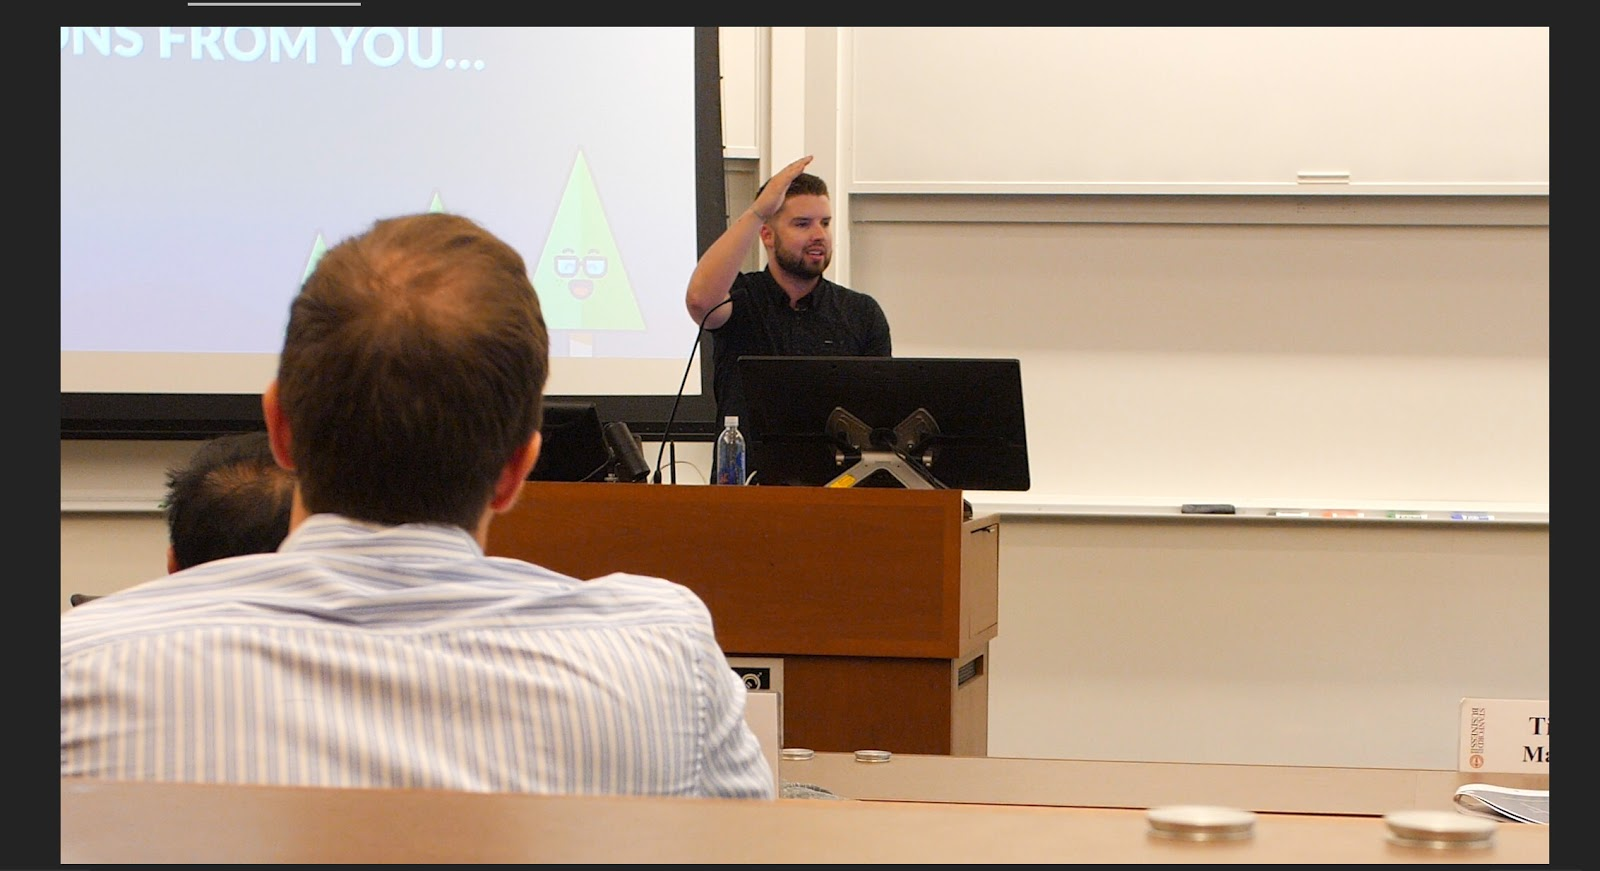 Here I am about to drop the beat around a PPC slide